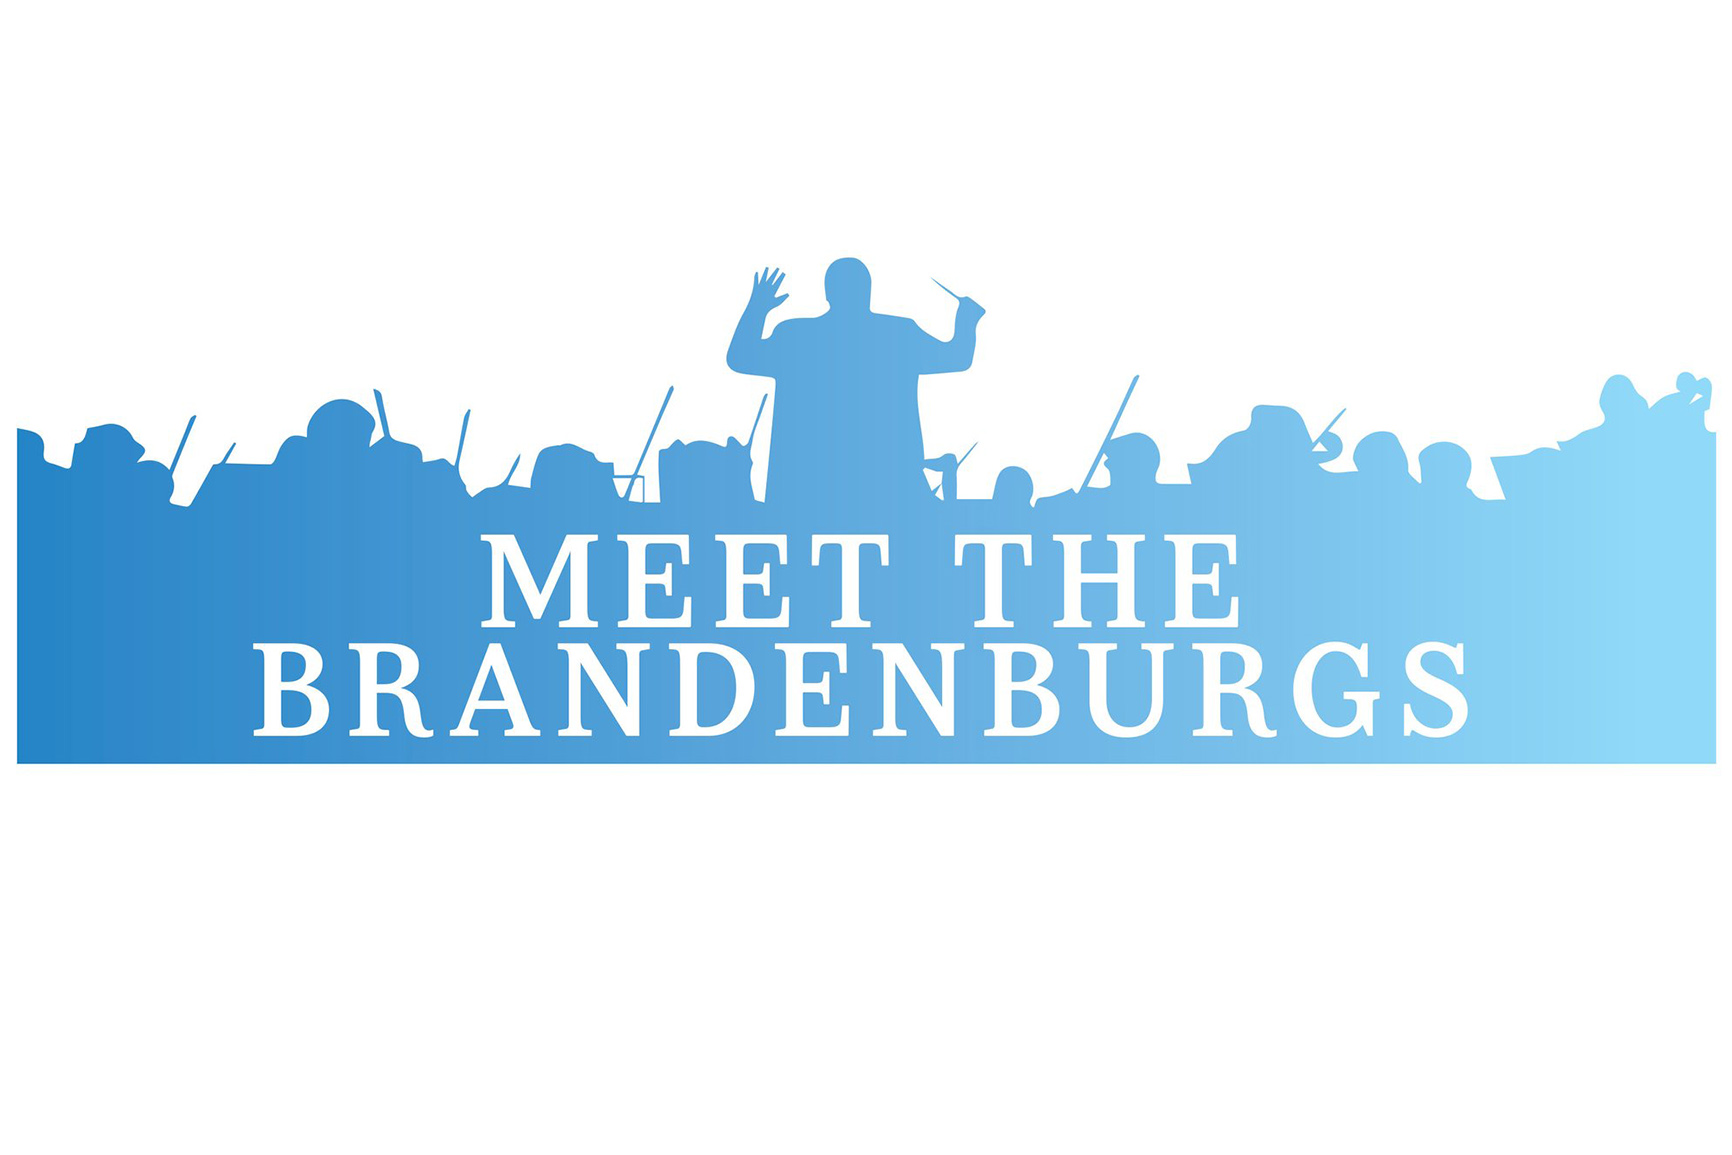 Meet the Brandenburgs